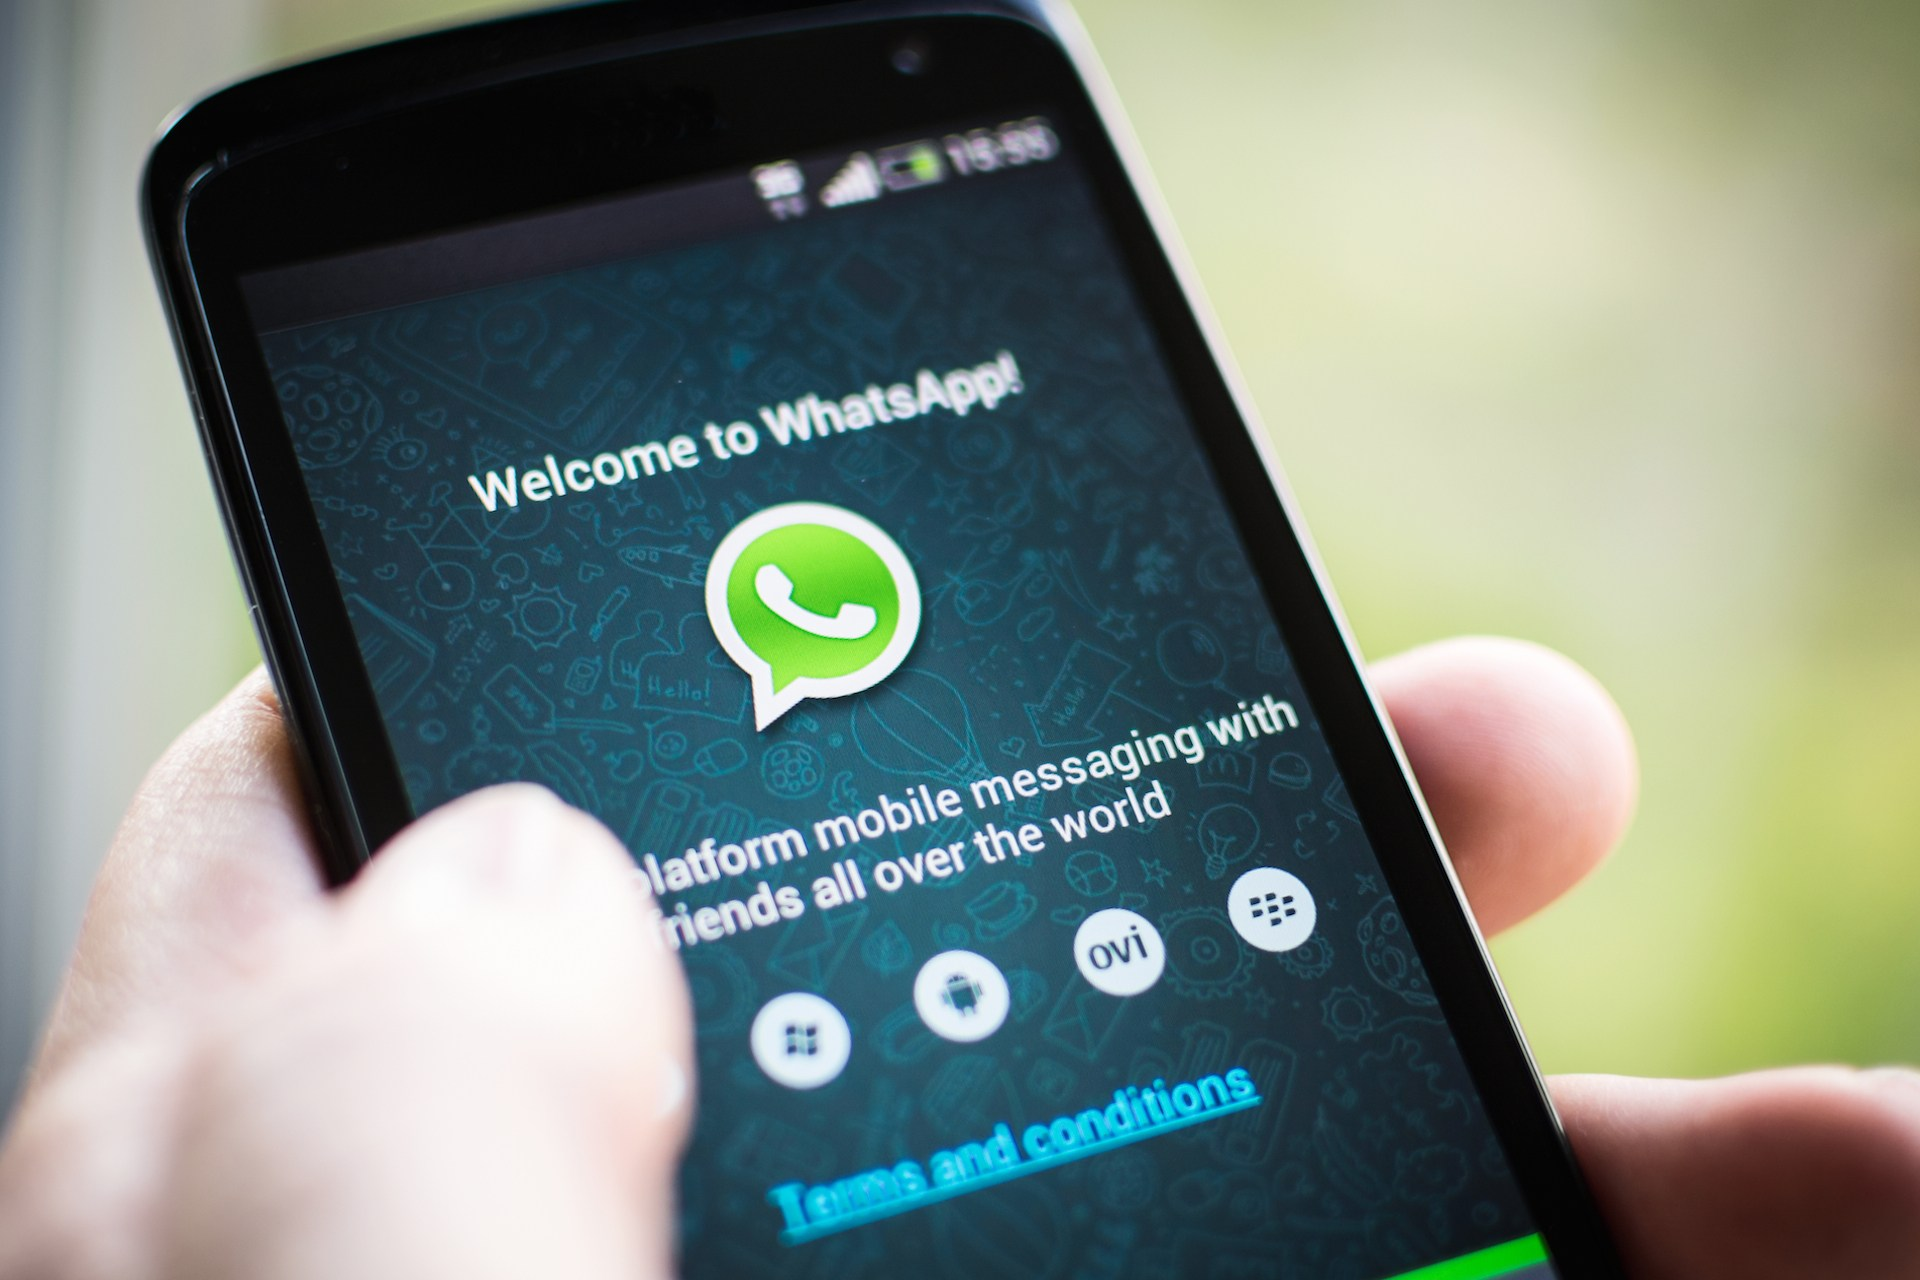 spiare whatsapp v1 06